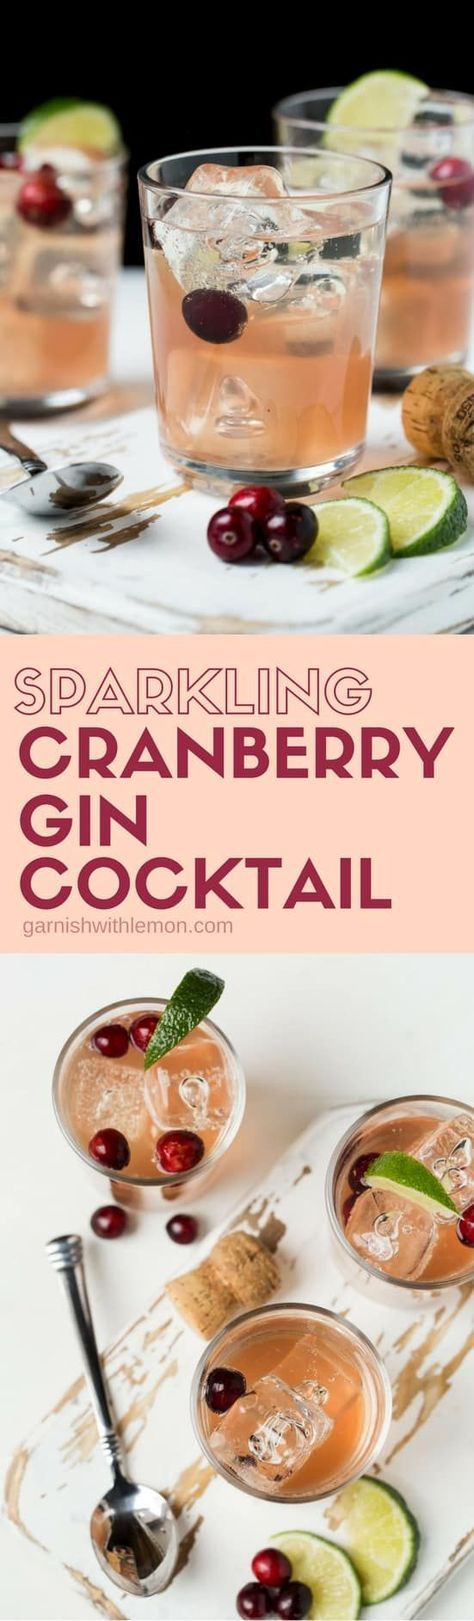 The 25+ best Good gin ideas on Pinterest Grapefruit martini - k chenm bel f r kleine k chen